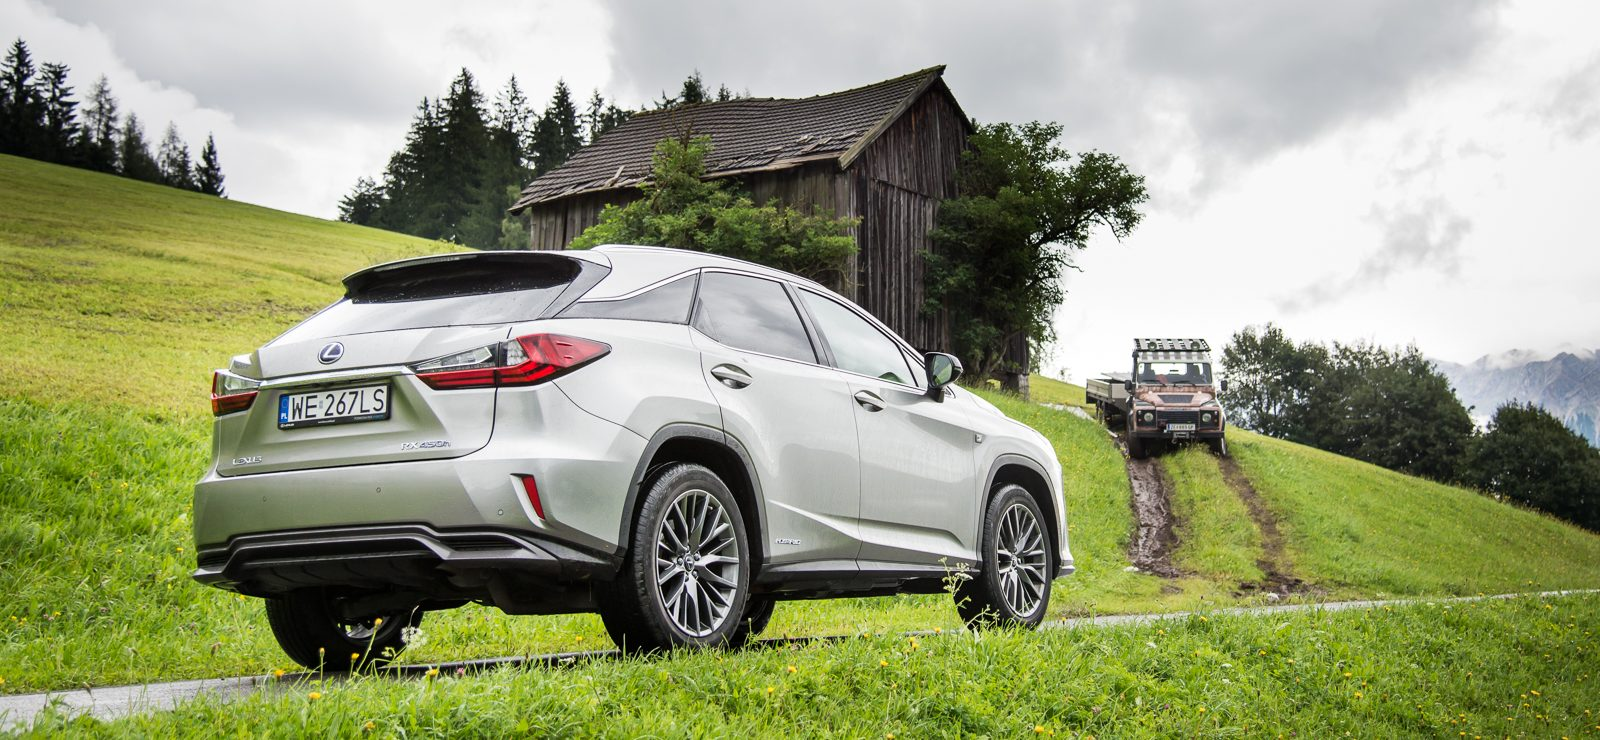 nowy-lexus-rx450h-fsport-test